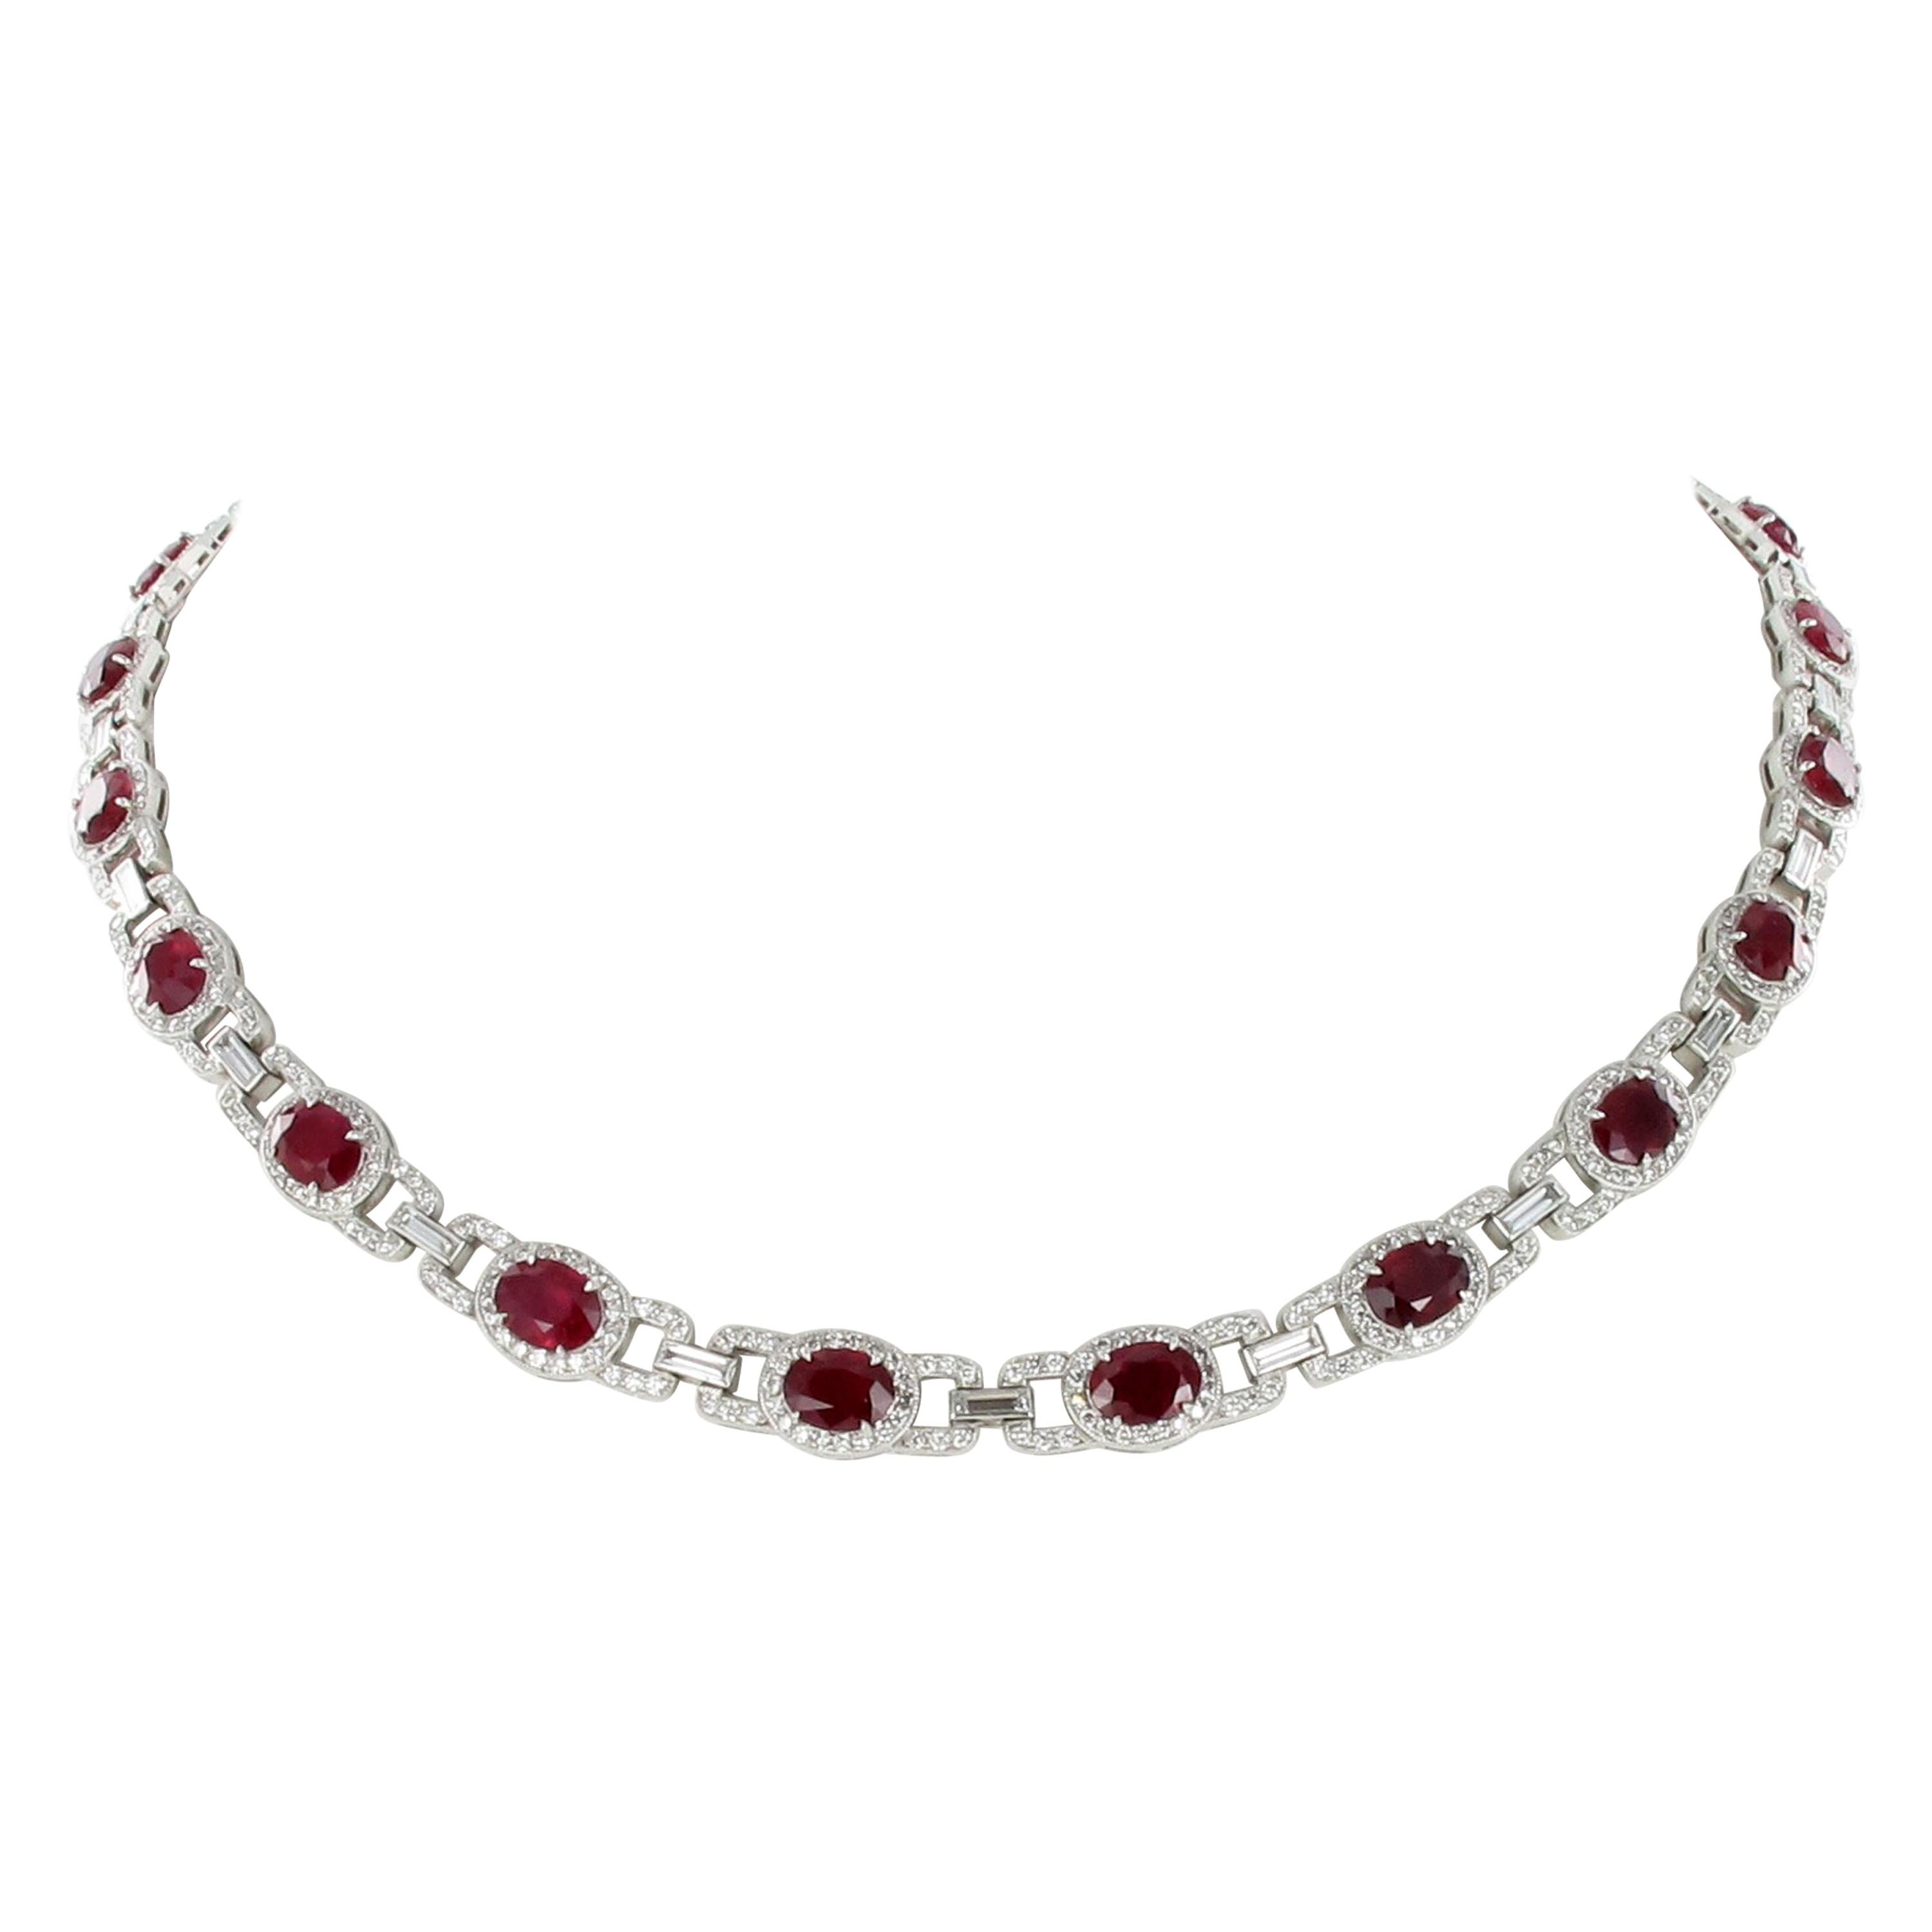 Ruby and Diamond Necklace in Platinum 950